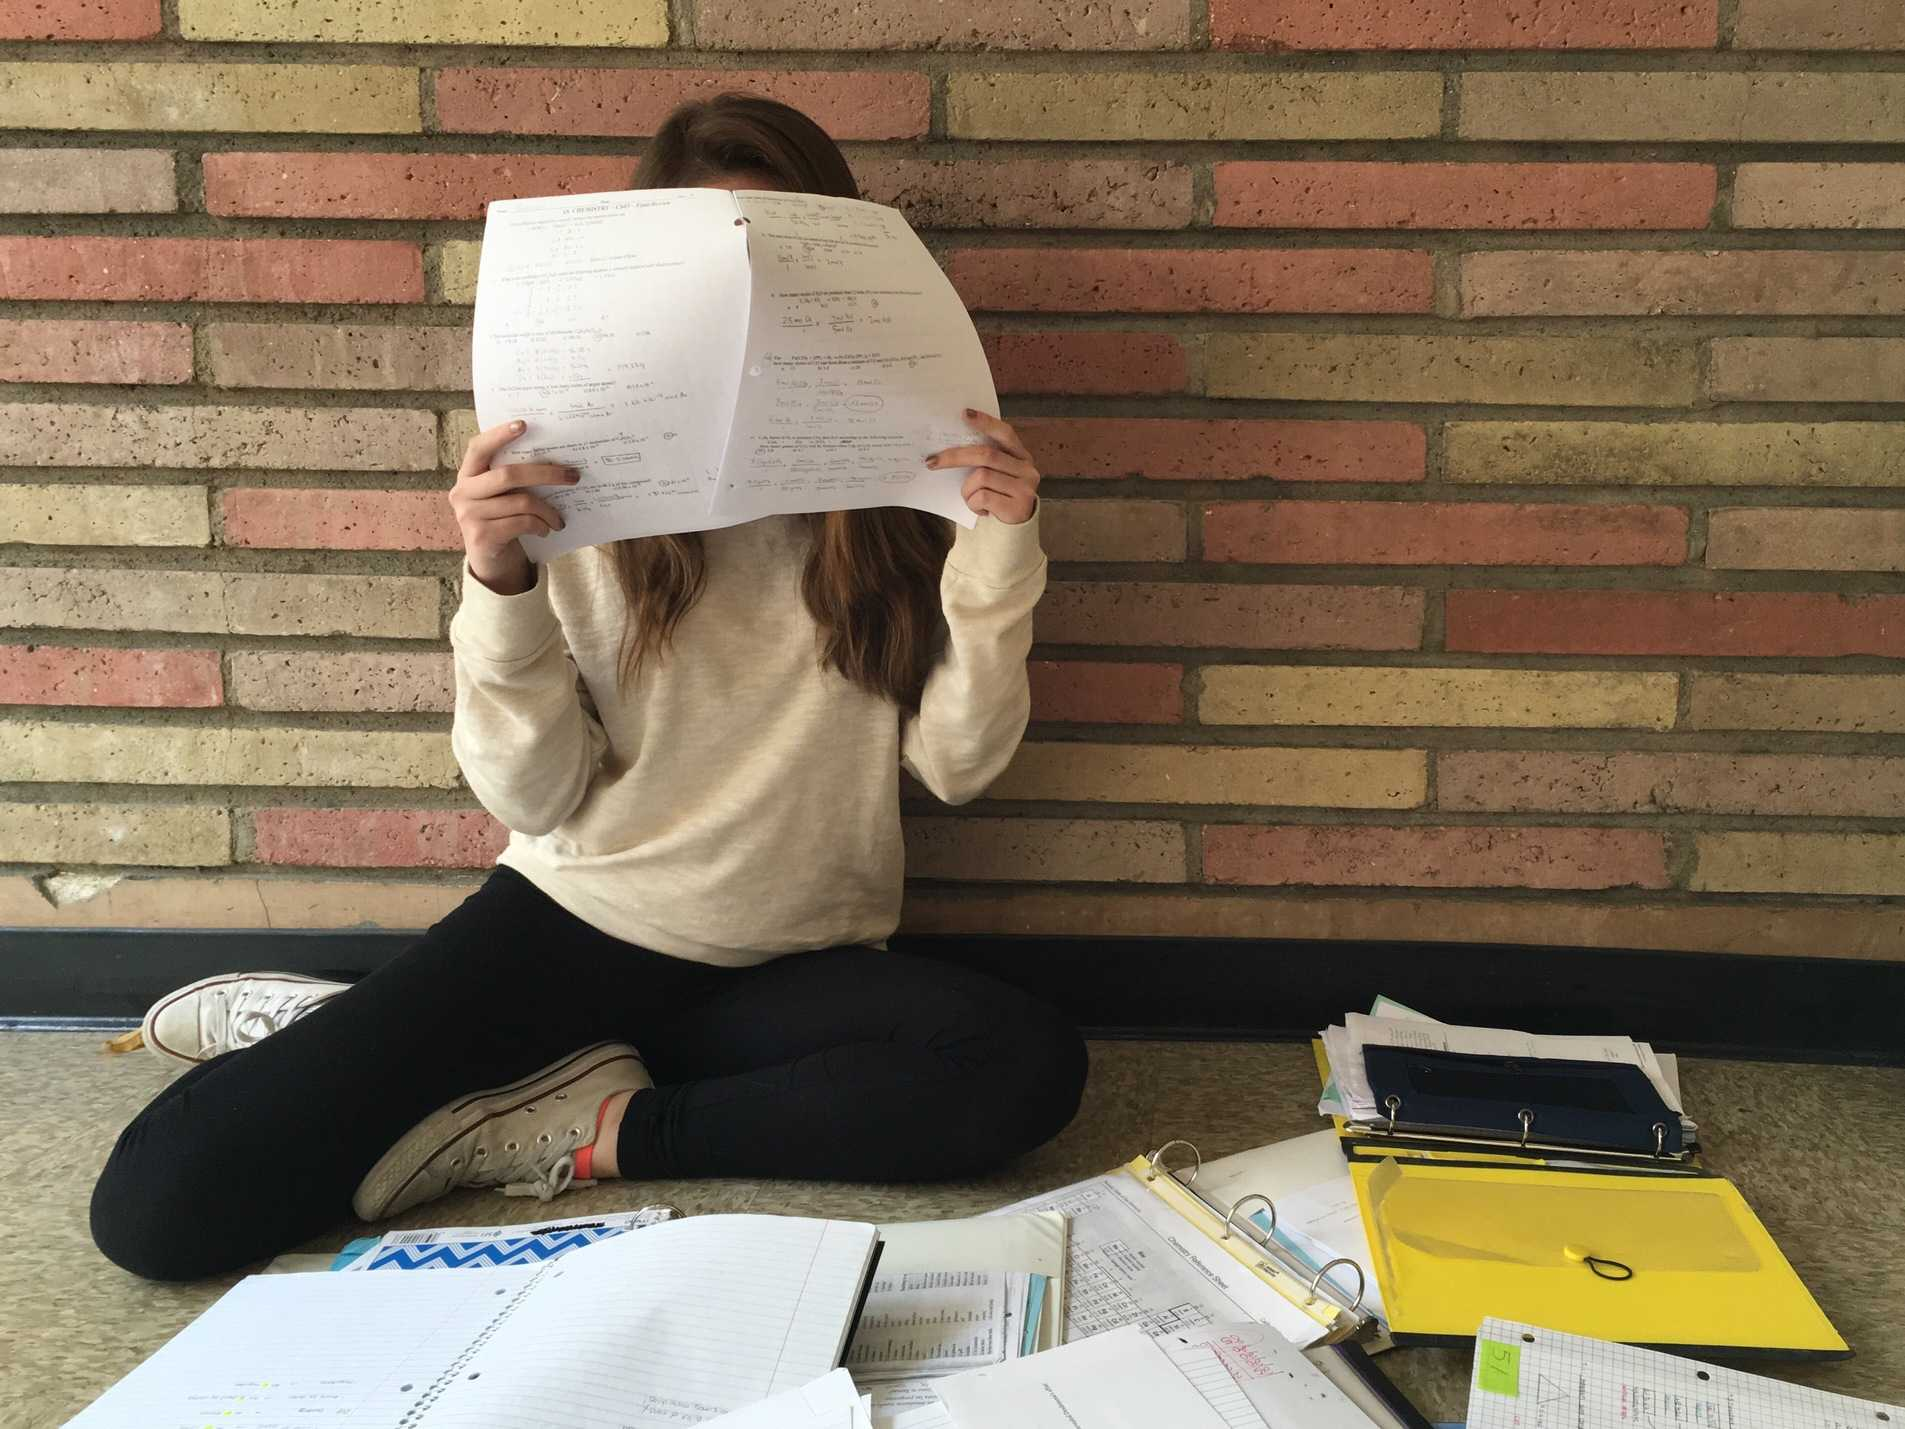 Sophomore Katie Gray reviews information for her chemistry final.